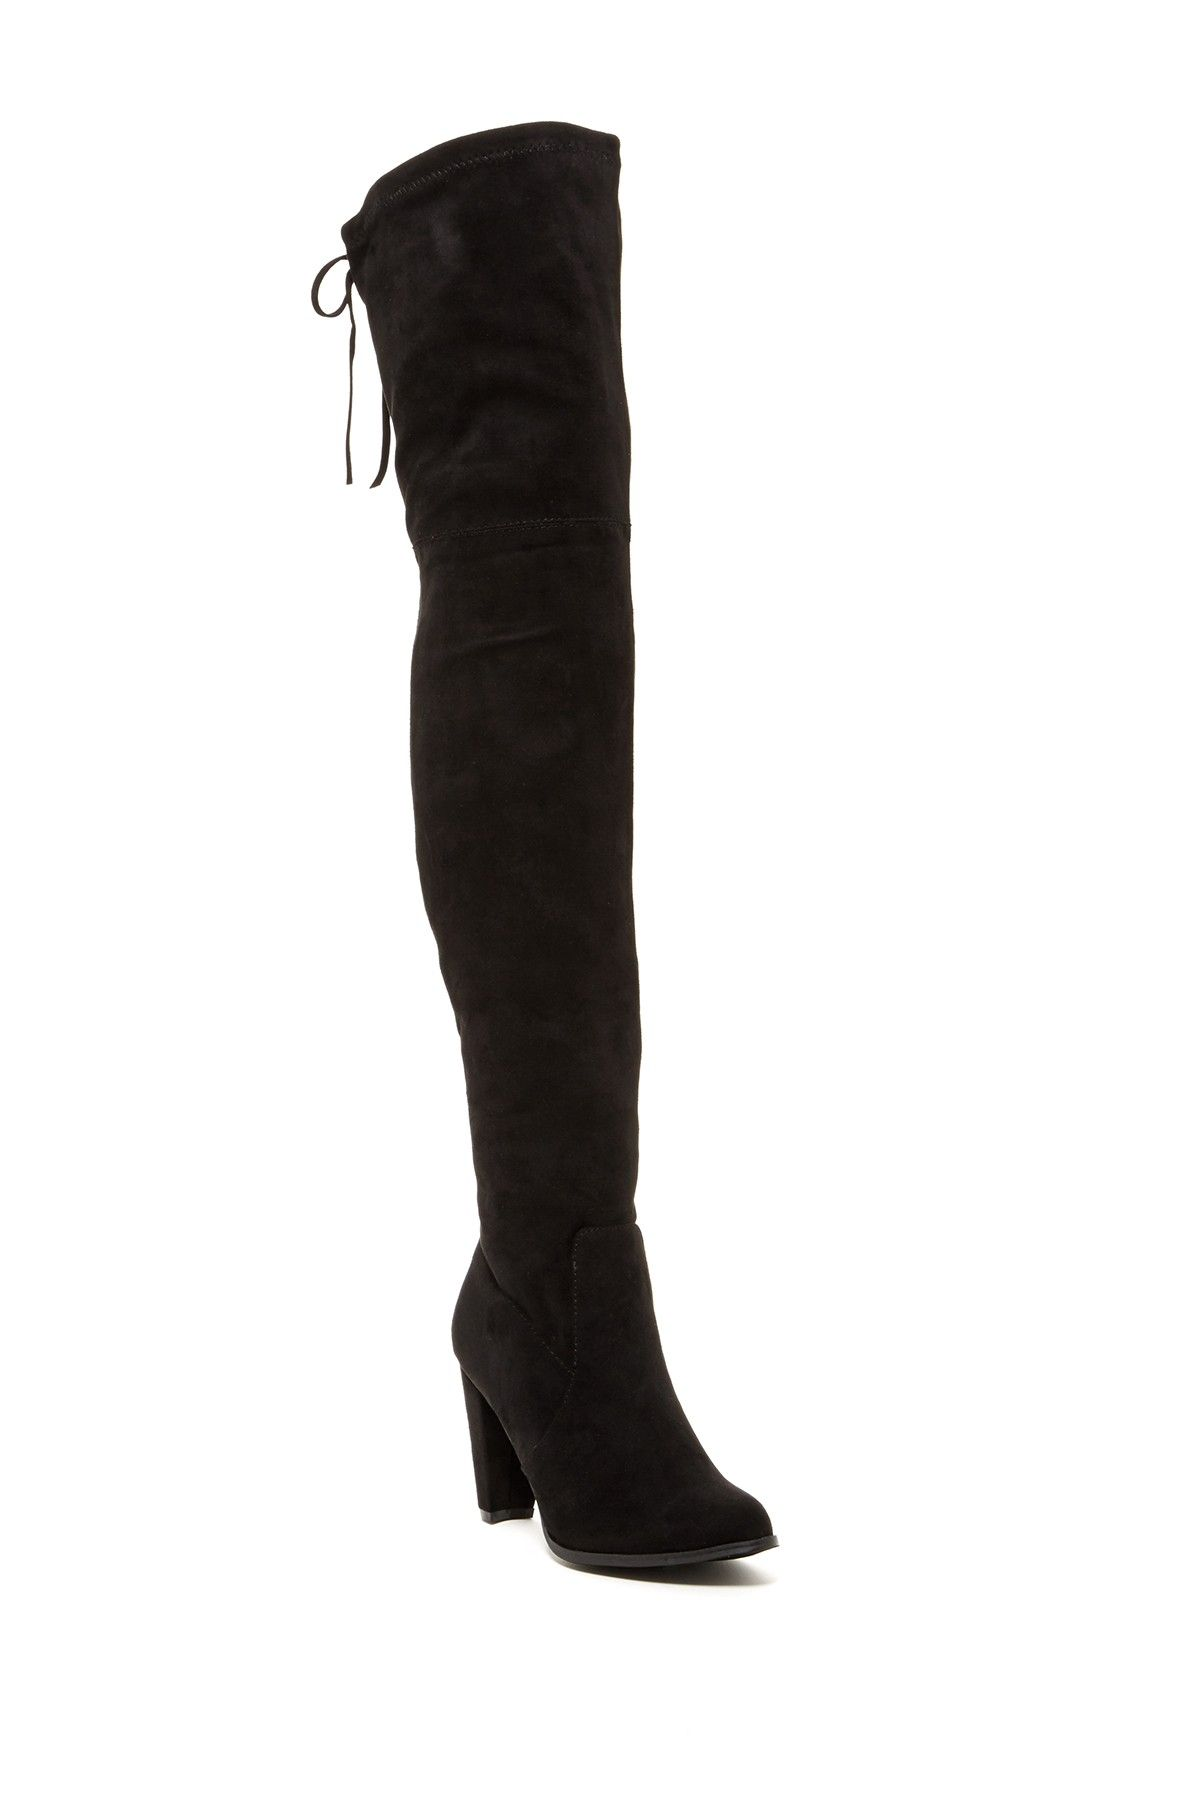 3b59ac25857 Sorcha Faux Fur Lined Over-the-Knee Boot by Catherine Catherine Malandrino  on  HauteLook